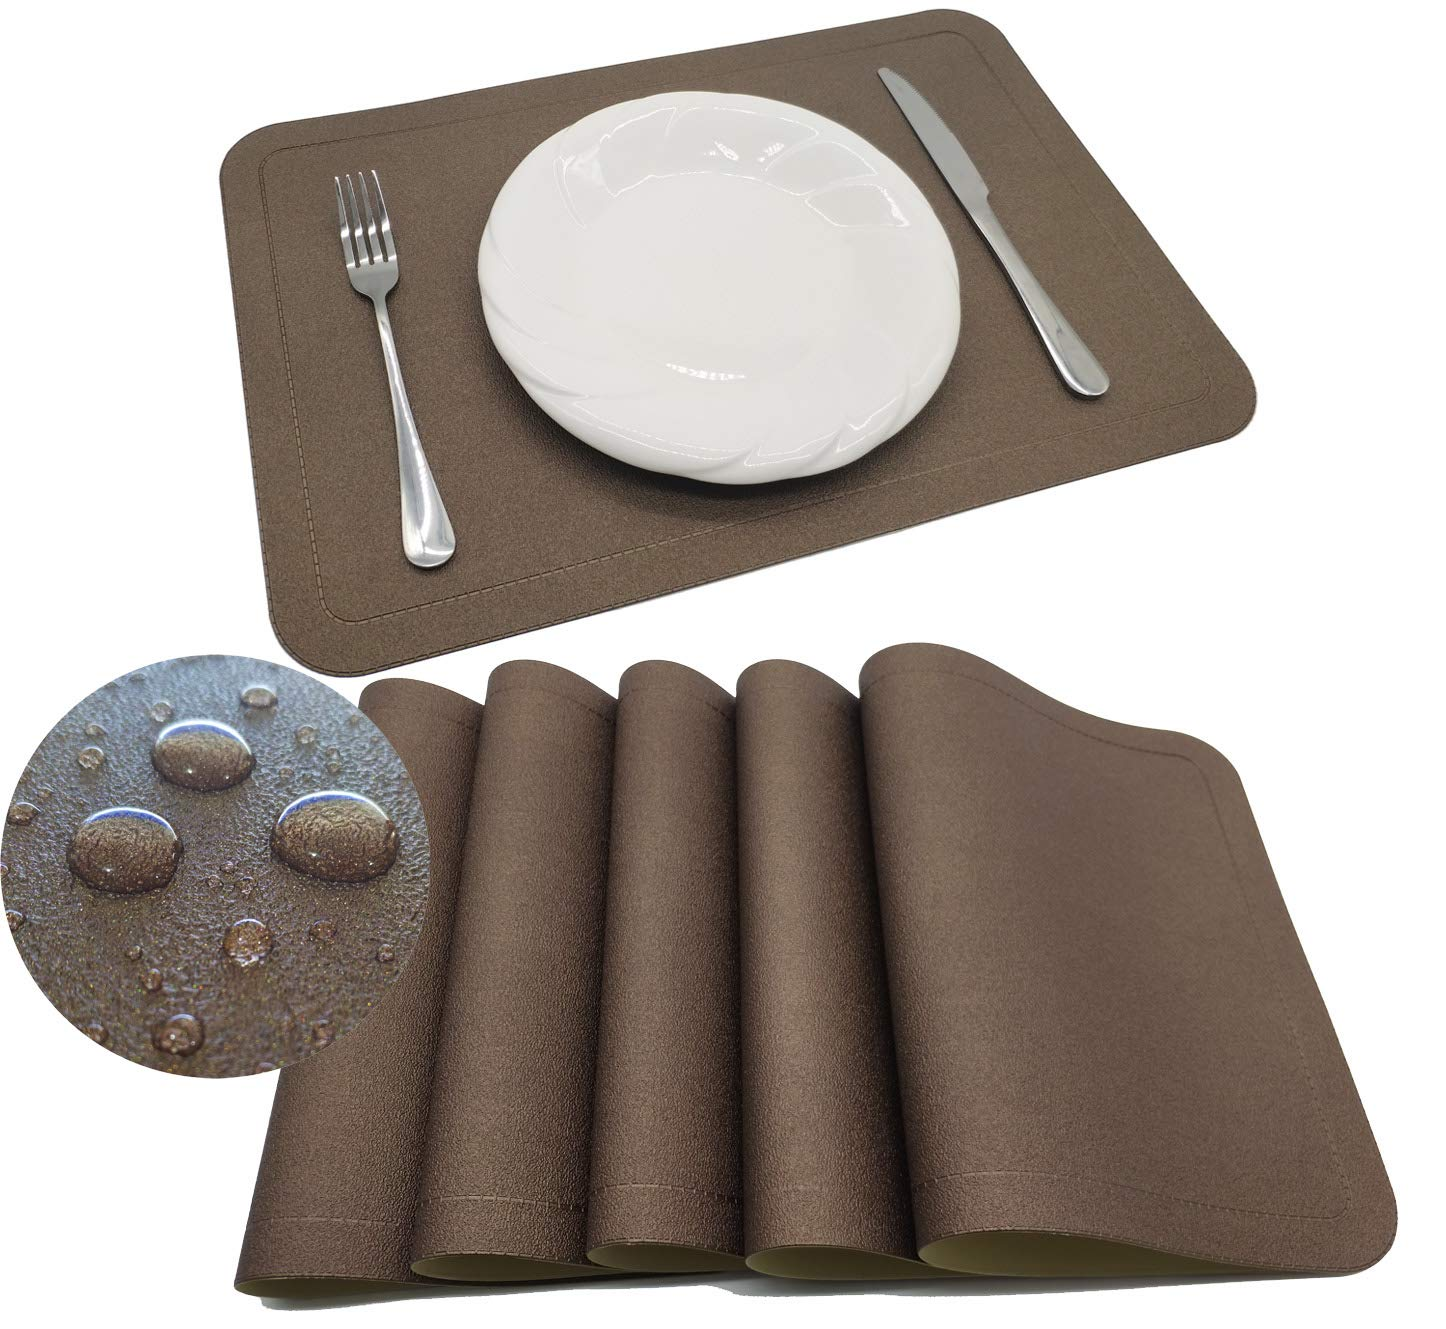 Tennove Placemats Set of 6, PU Leather Table Mats Stain Resistant Washable Placemats for Kitchen Dining Table (PU-Brown)